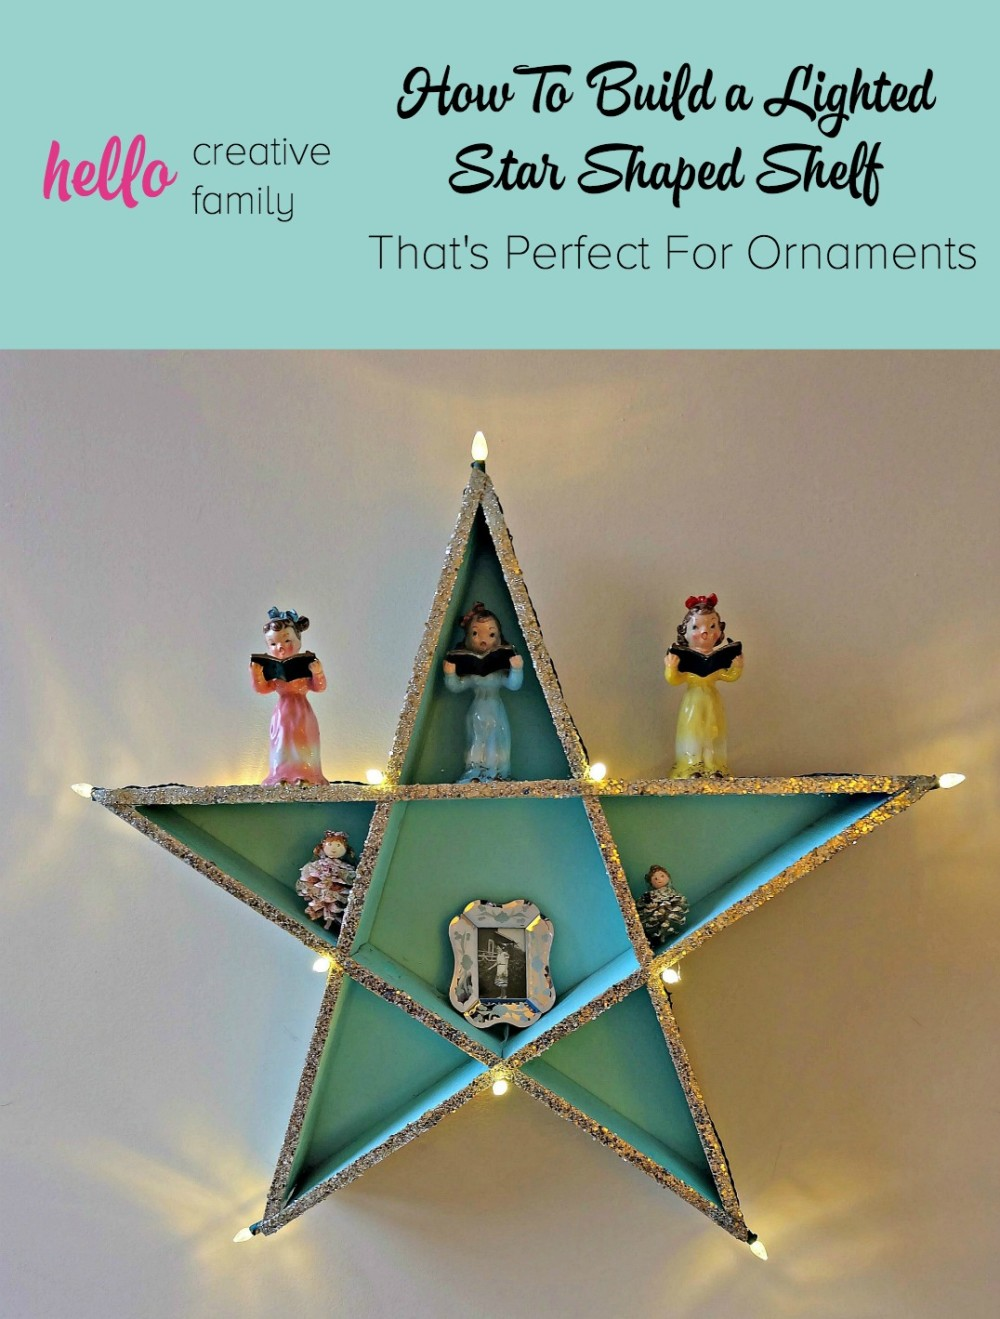 How To Build a Lighted DIY Star Shaped Shelf That's Perfect For Ornaments